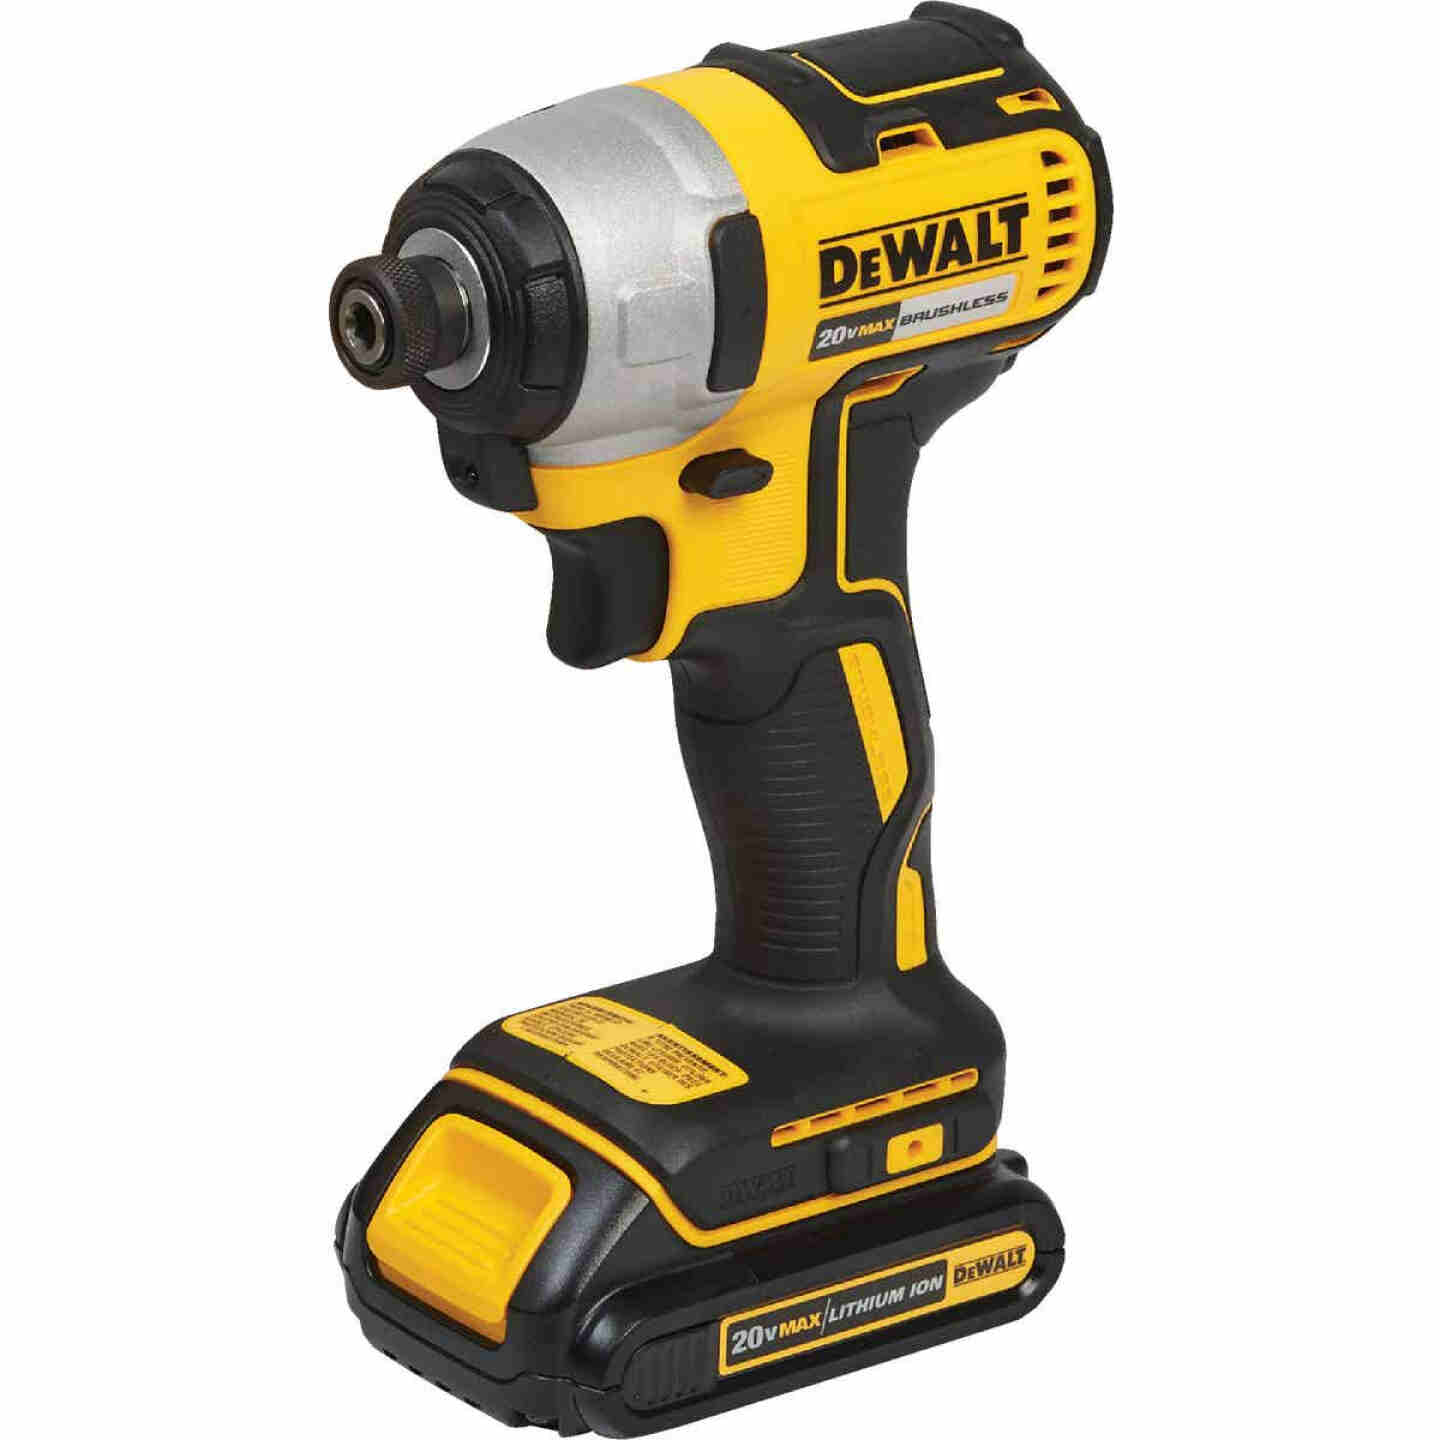 DeWalt 20 Volt MAX Lithium-Ion Brushless 1/4 In. Hex Cordless Impact Driver Kit Image 2